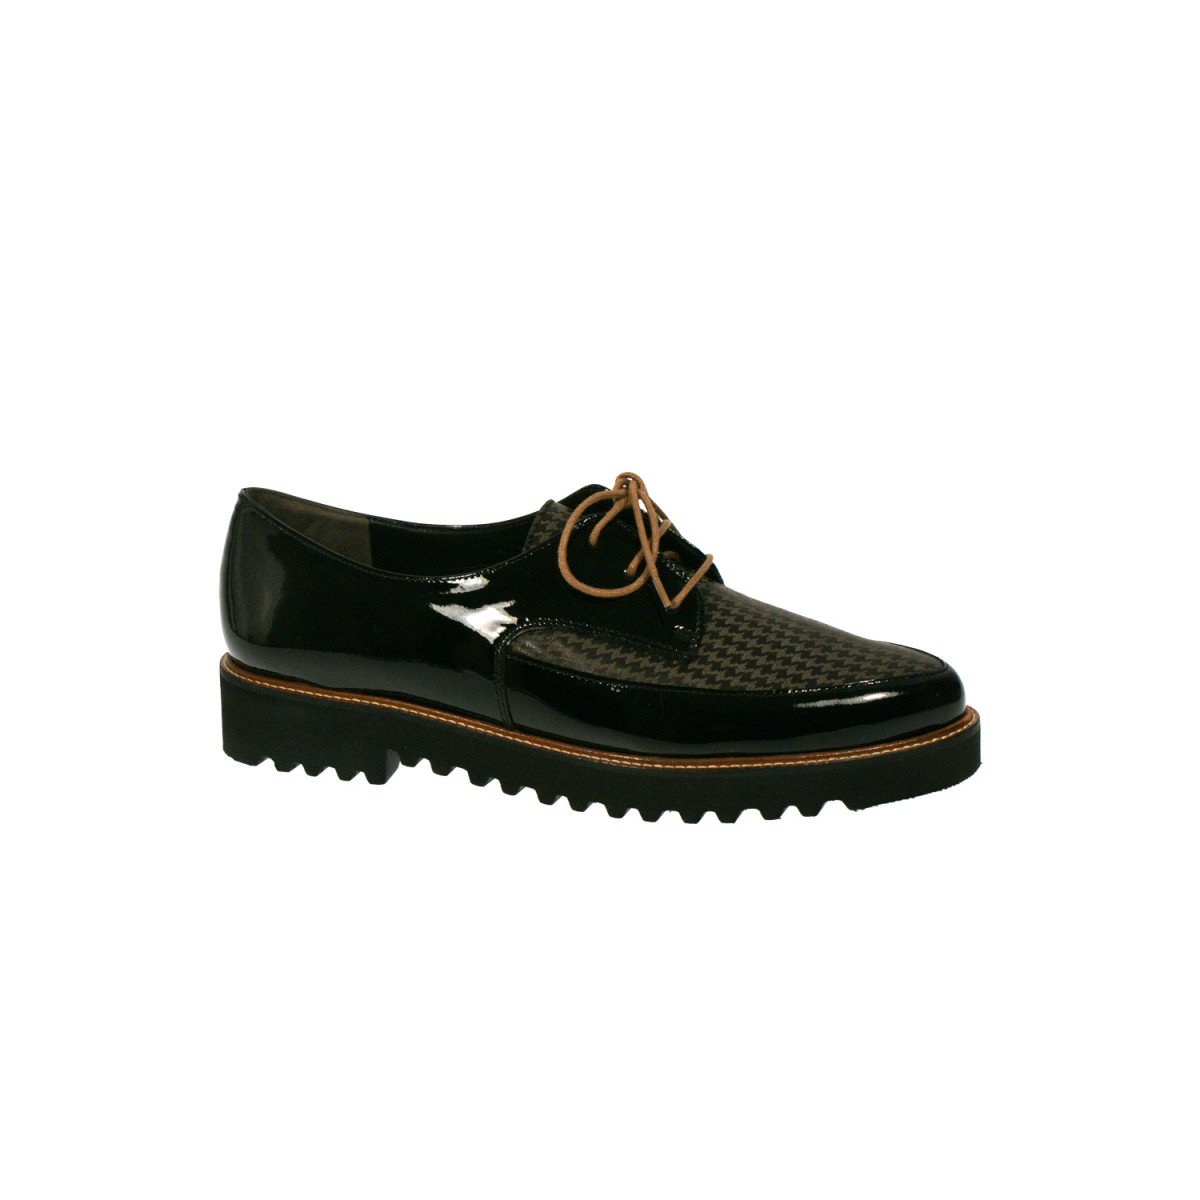 Paul Green 1665-10 Pepita Black-32